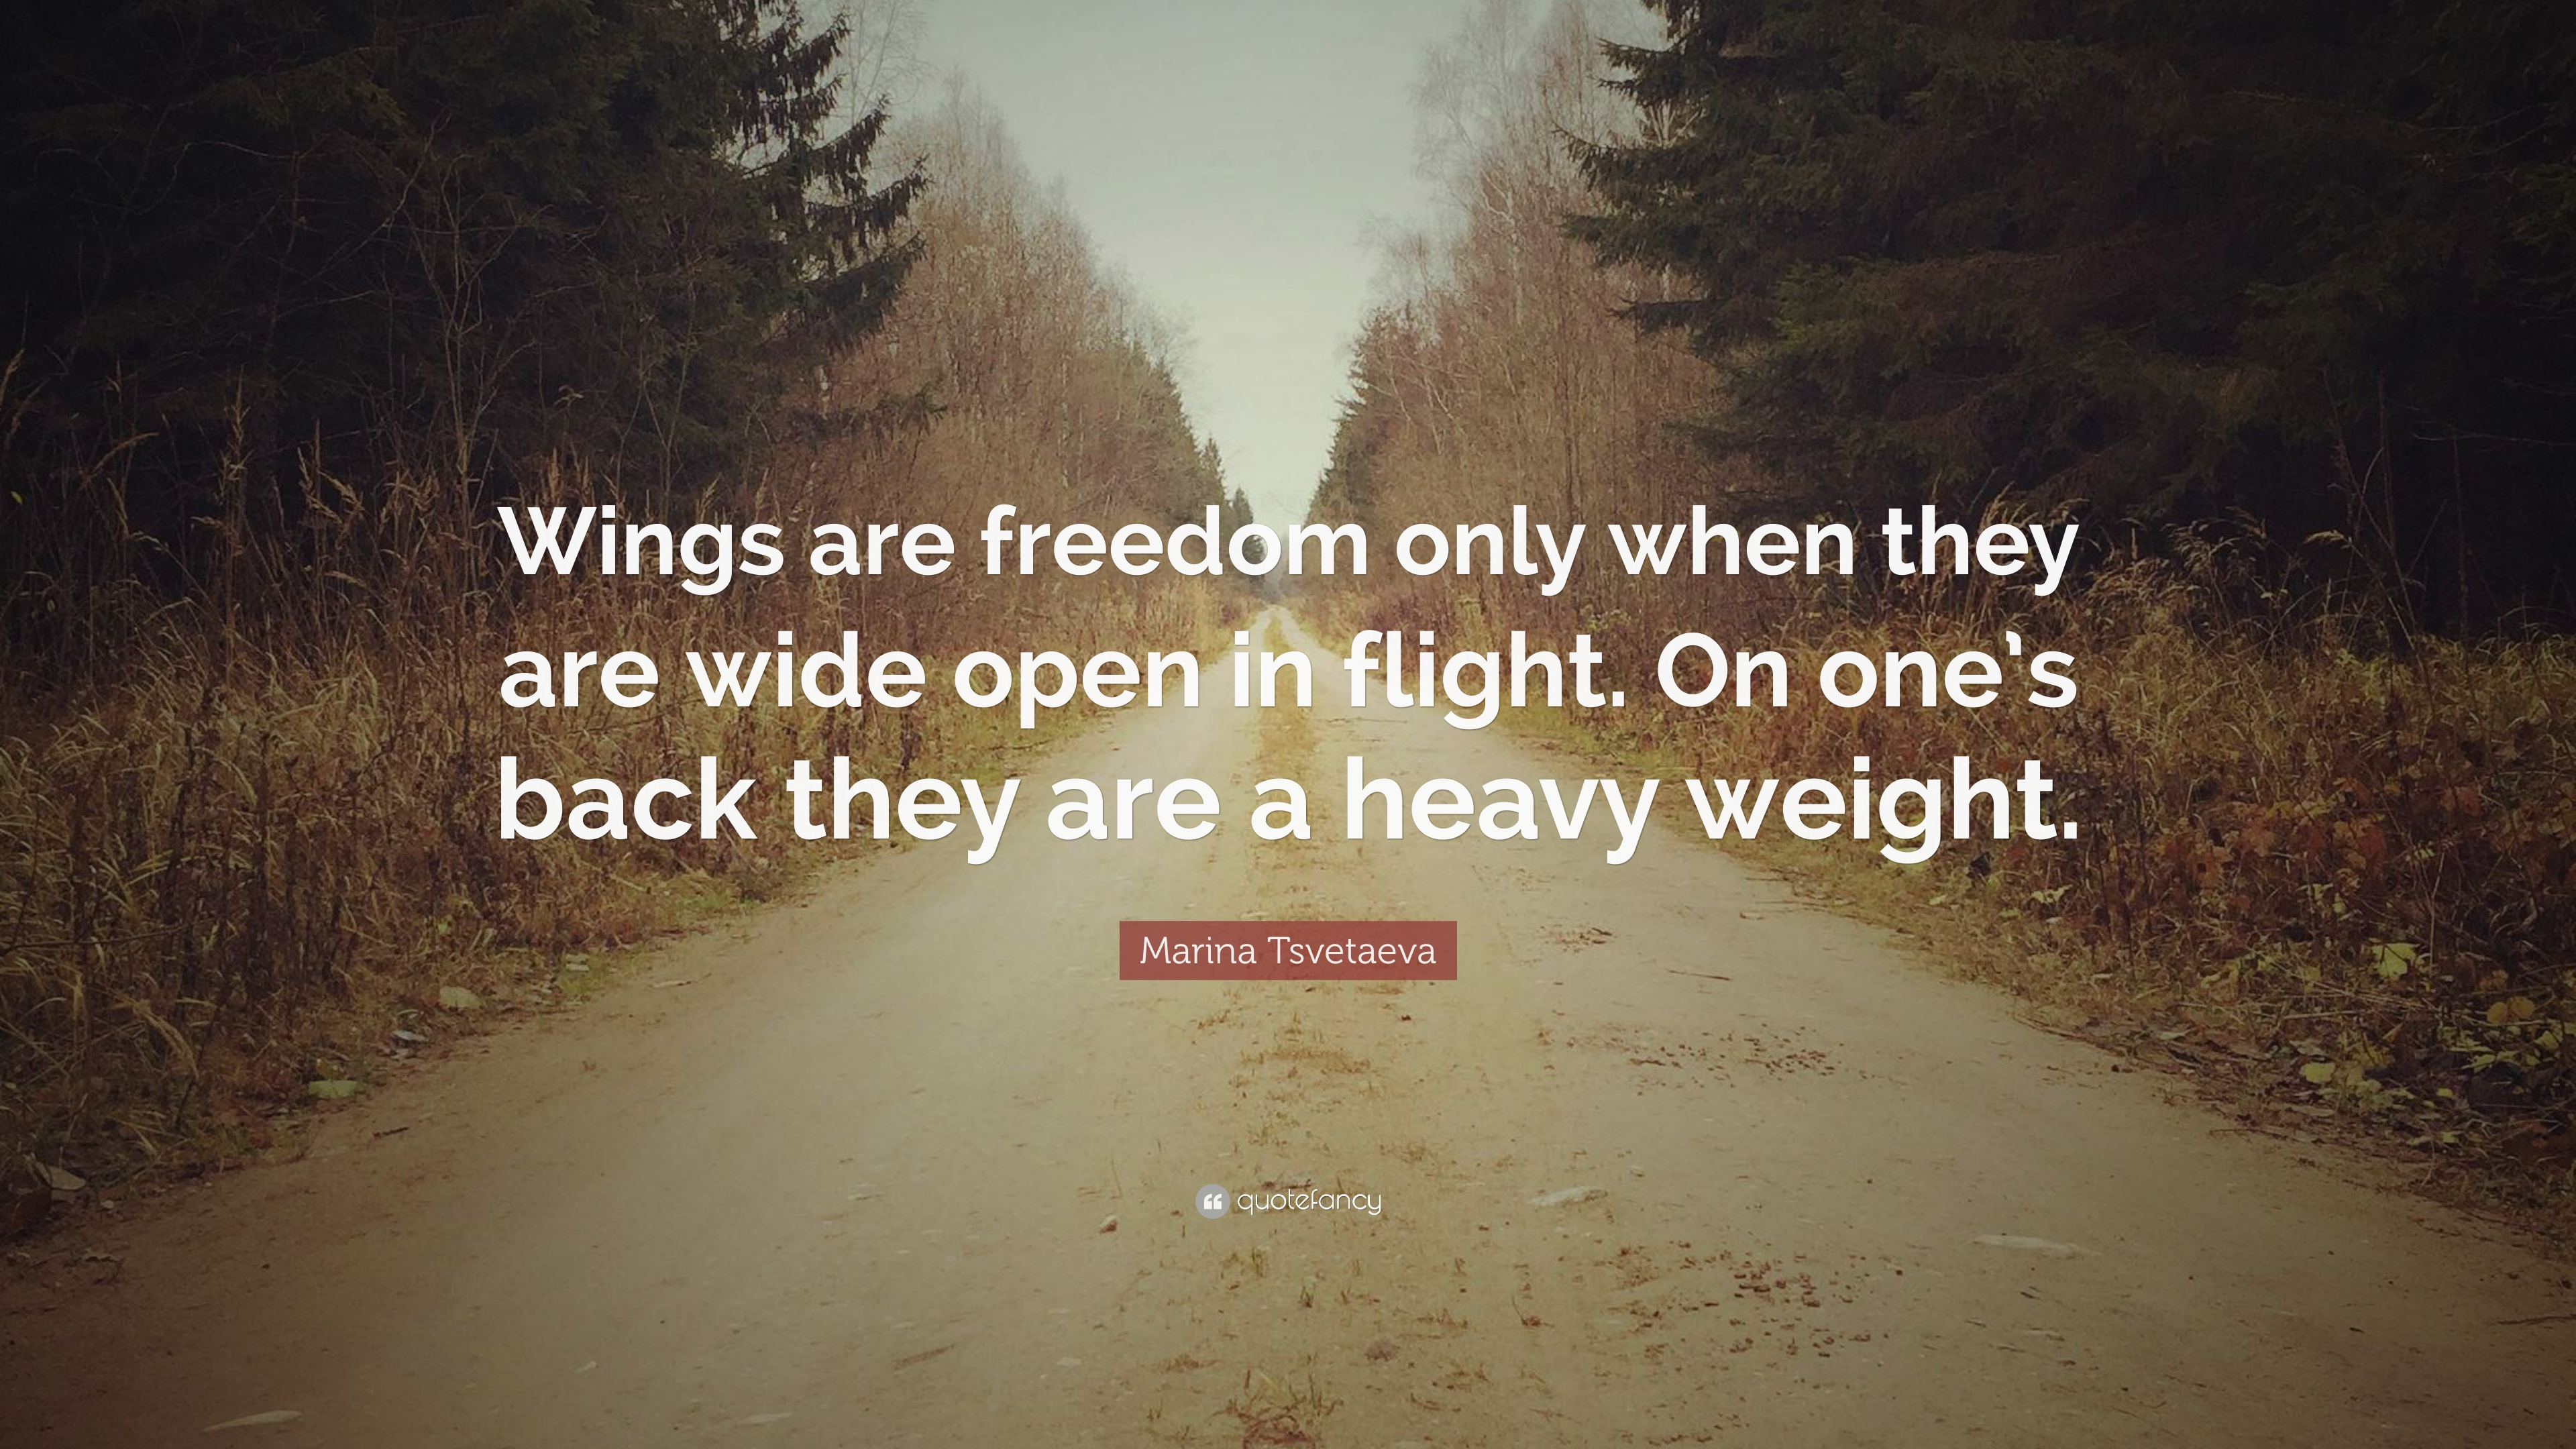 Marina Tsvetaeva Quote Wings Are Freedom Only When They Wide Open In Flight